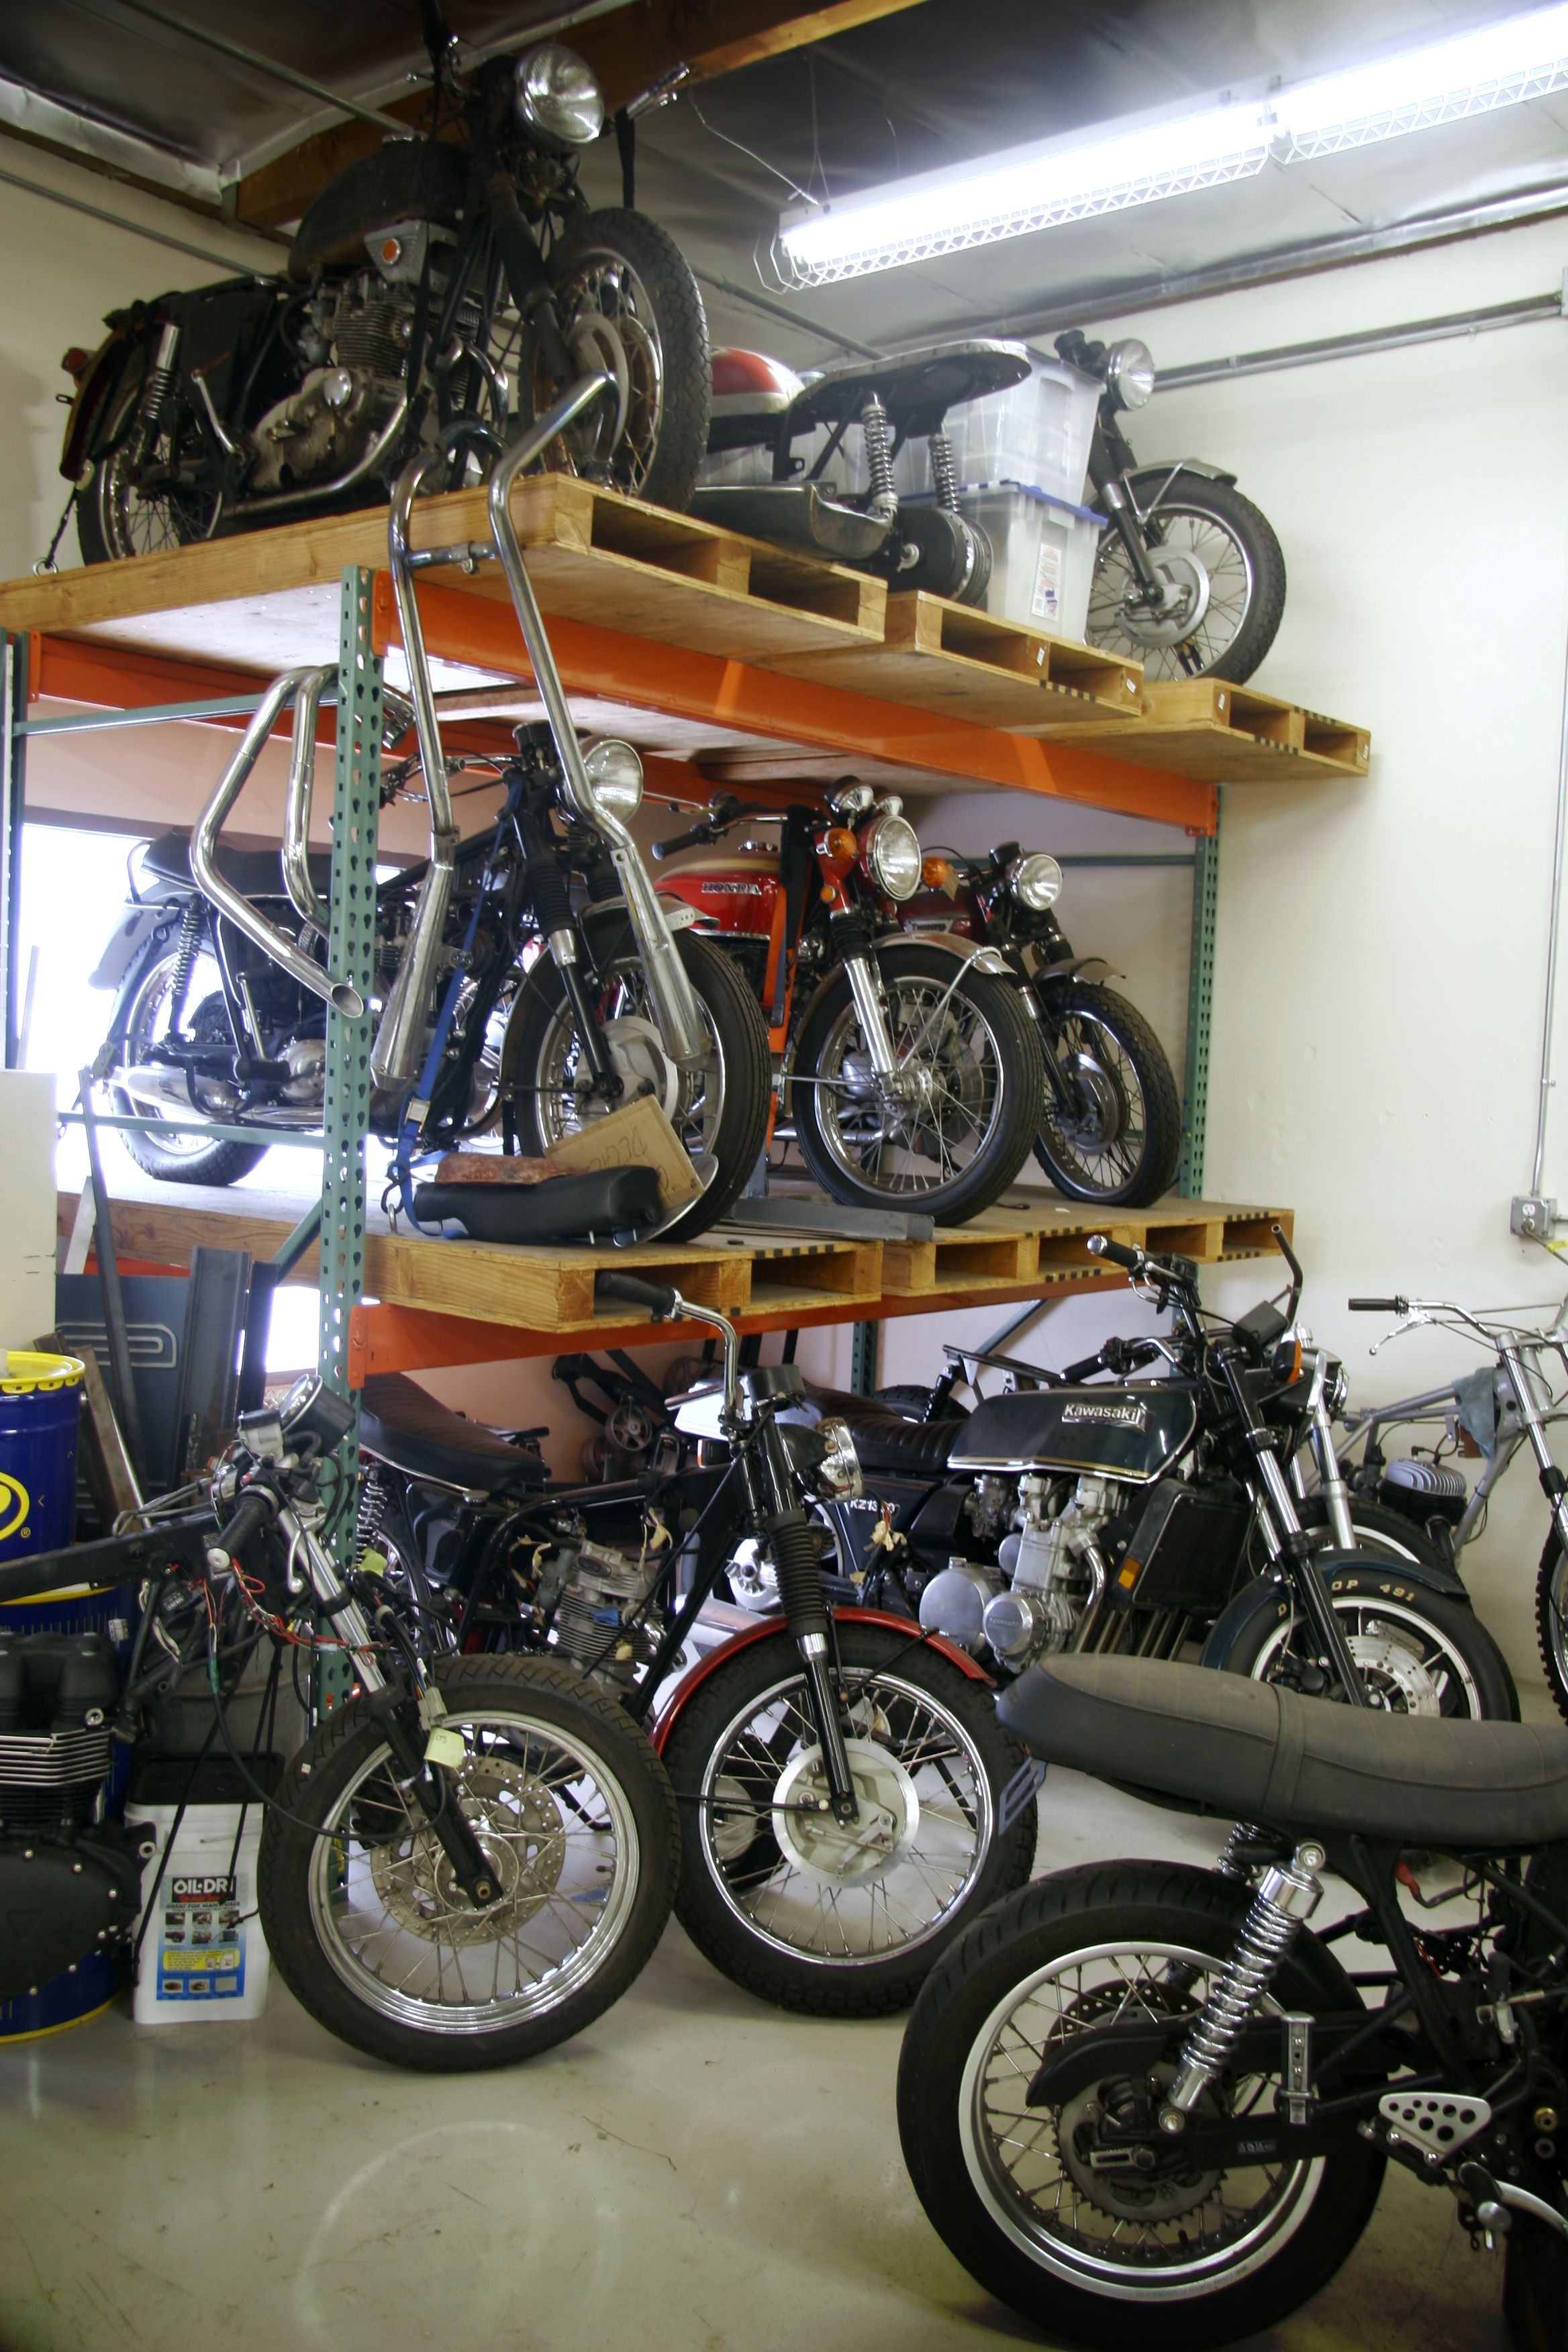 These Vintage Motorcycles In The Champions Moto Shop Are